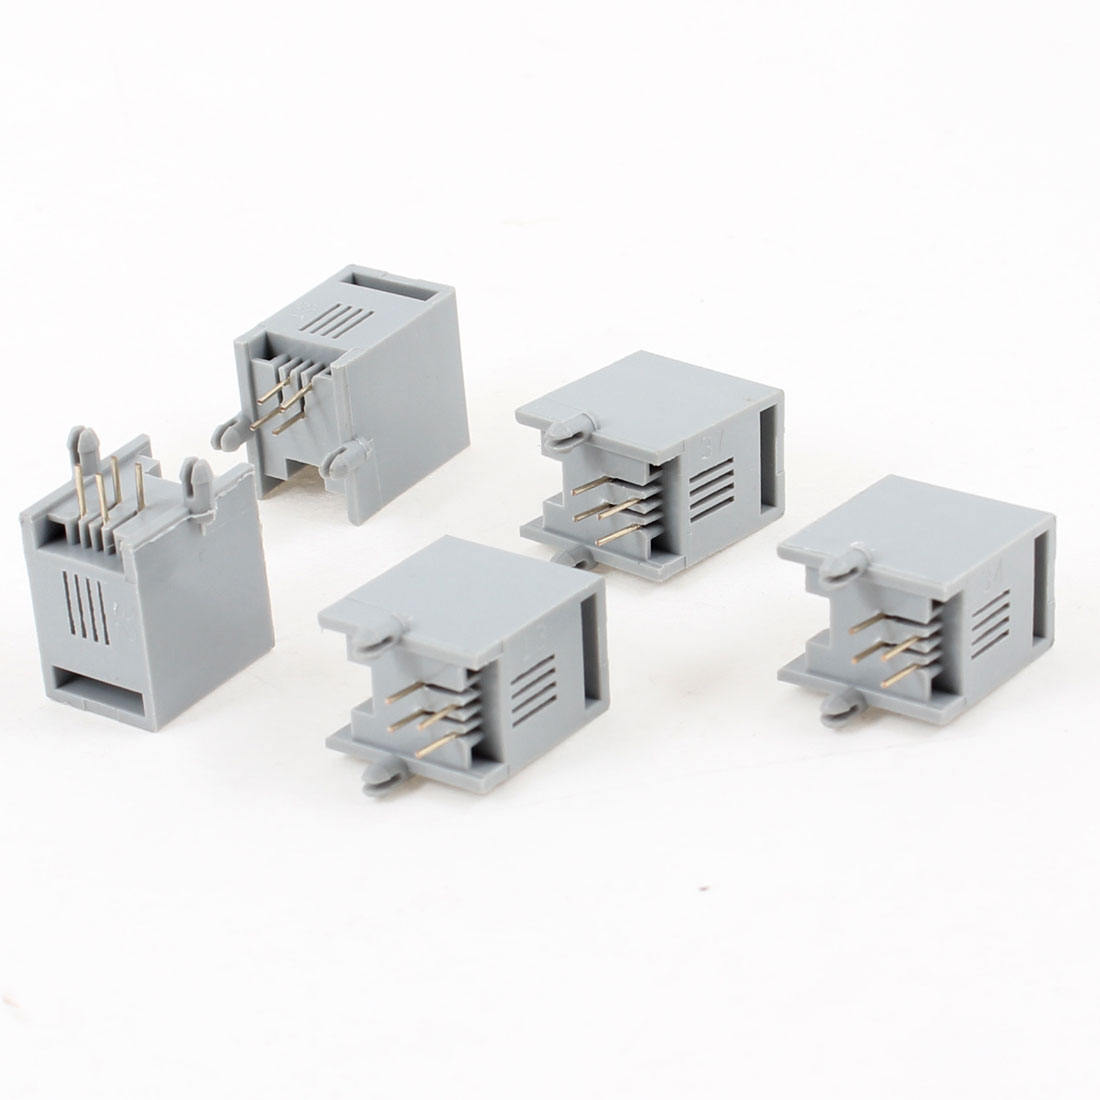 20 Pcs Unshielded RJ9 4P4C Network Modular PCB Connector Jacks Gray